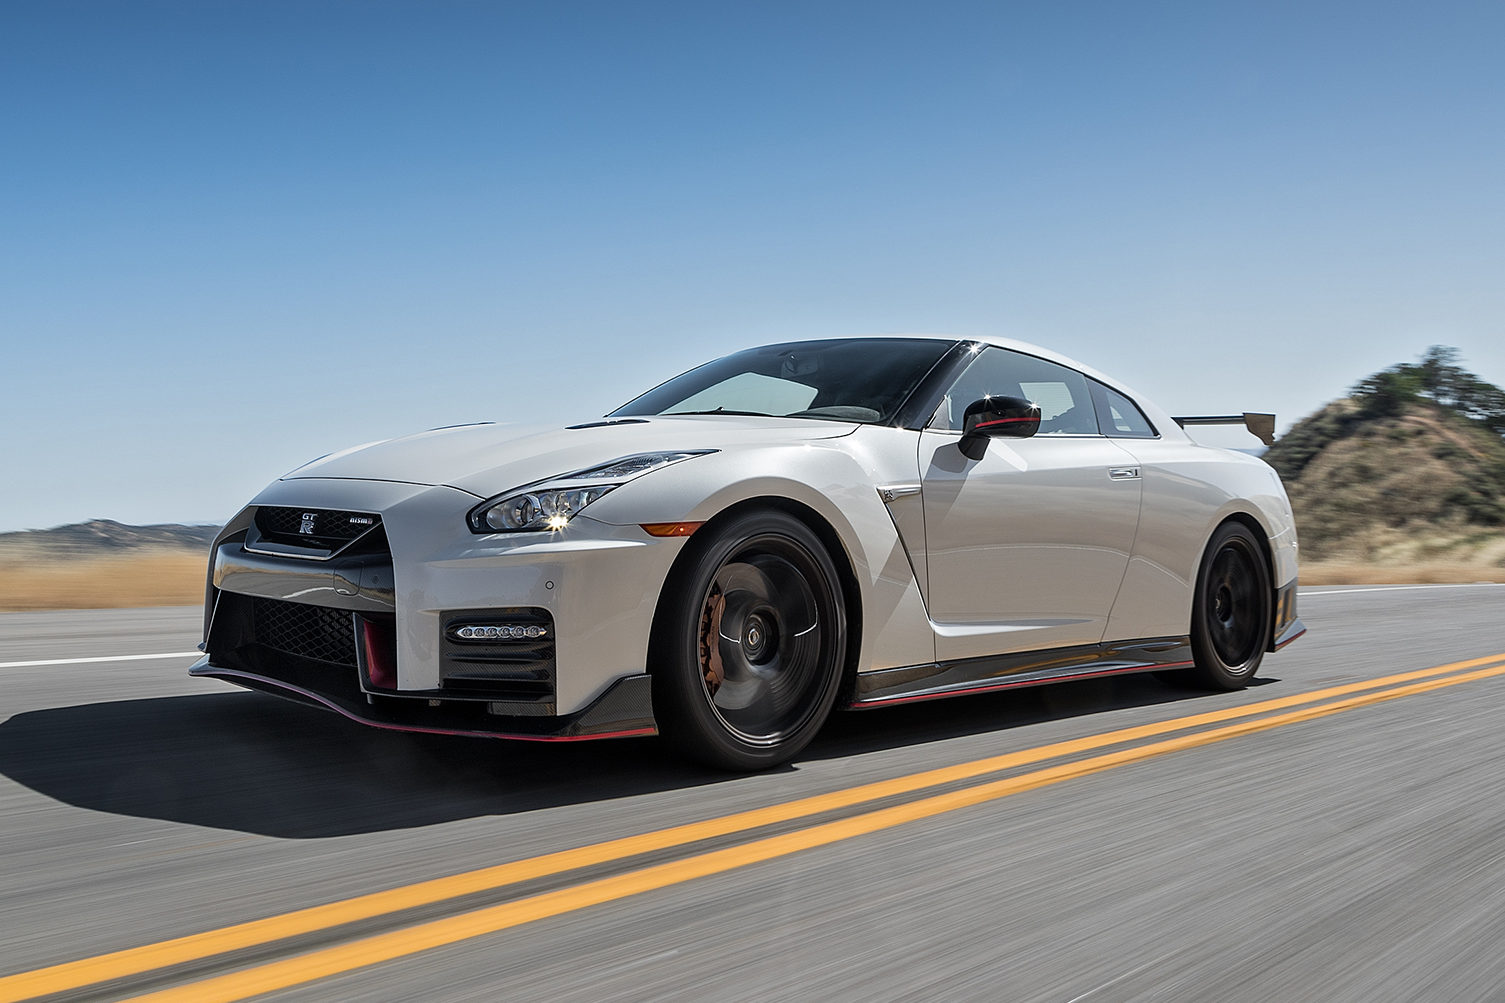 Nissan Gtr Nismo 0 60 2018 Nissan Gtr Nismo Specs New Car Release Date And Review 2018 Amanda